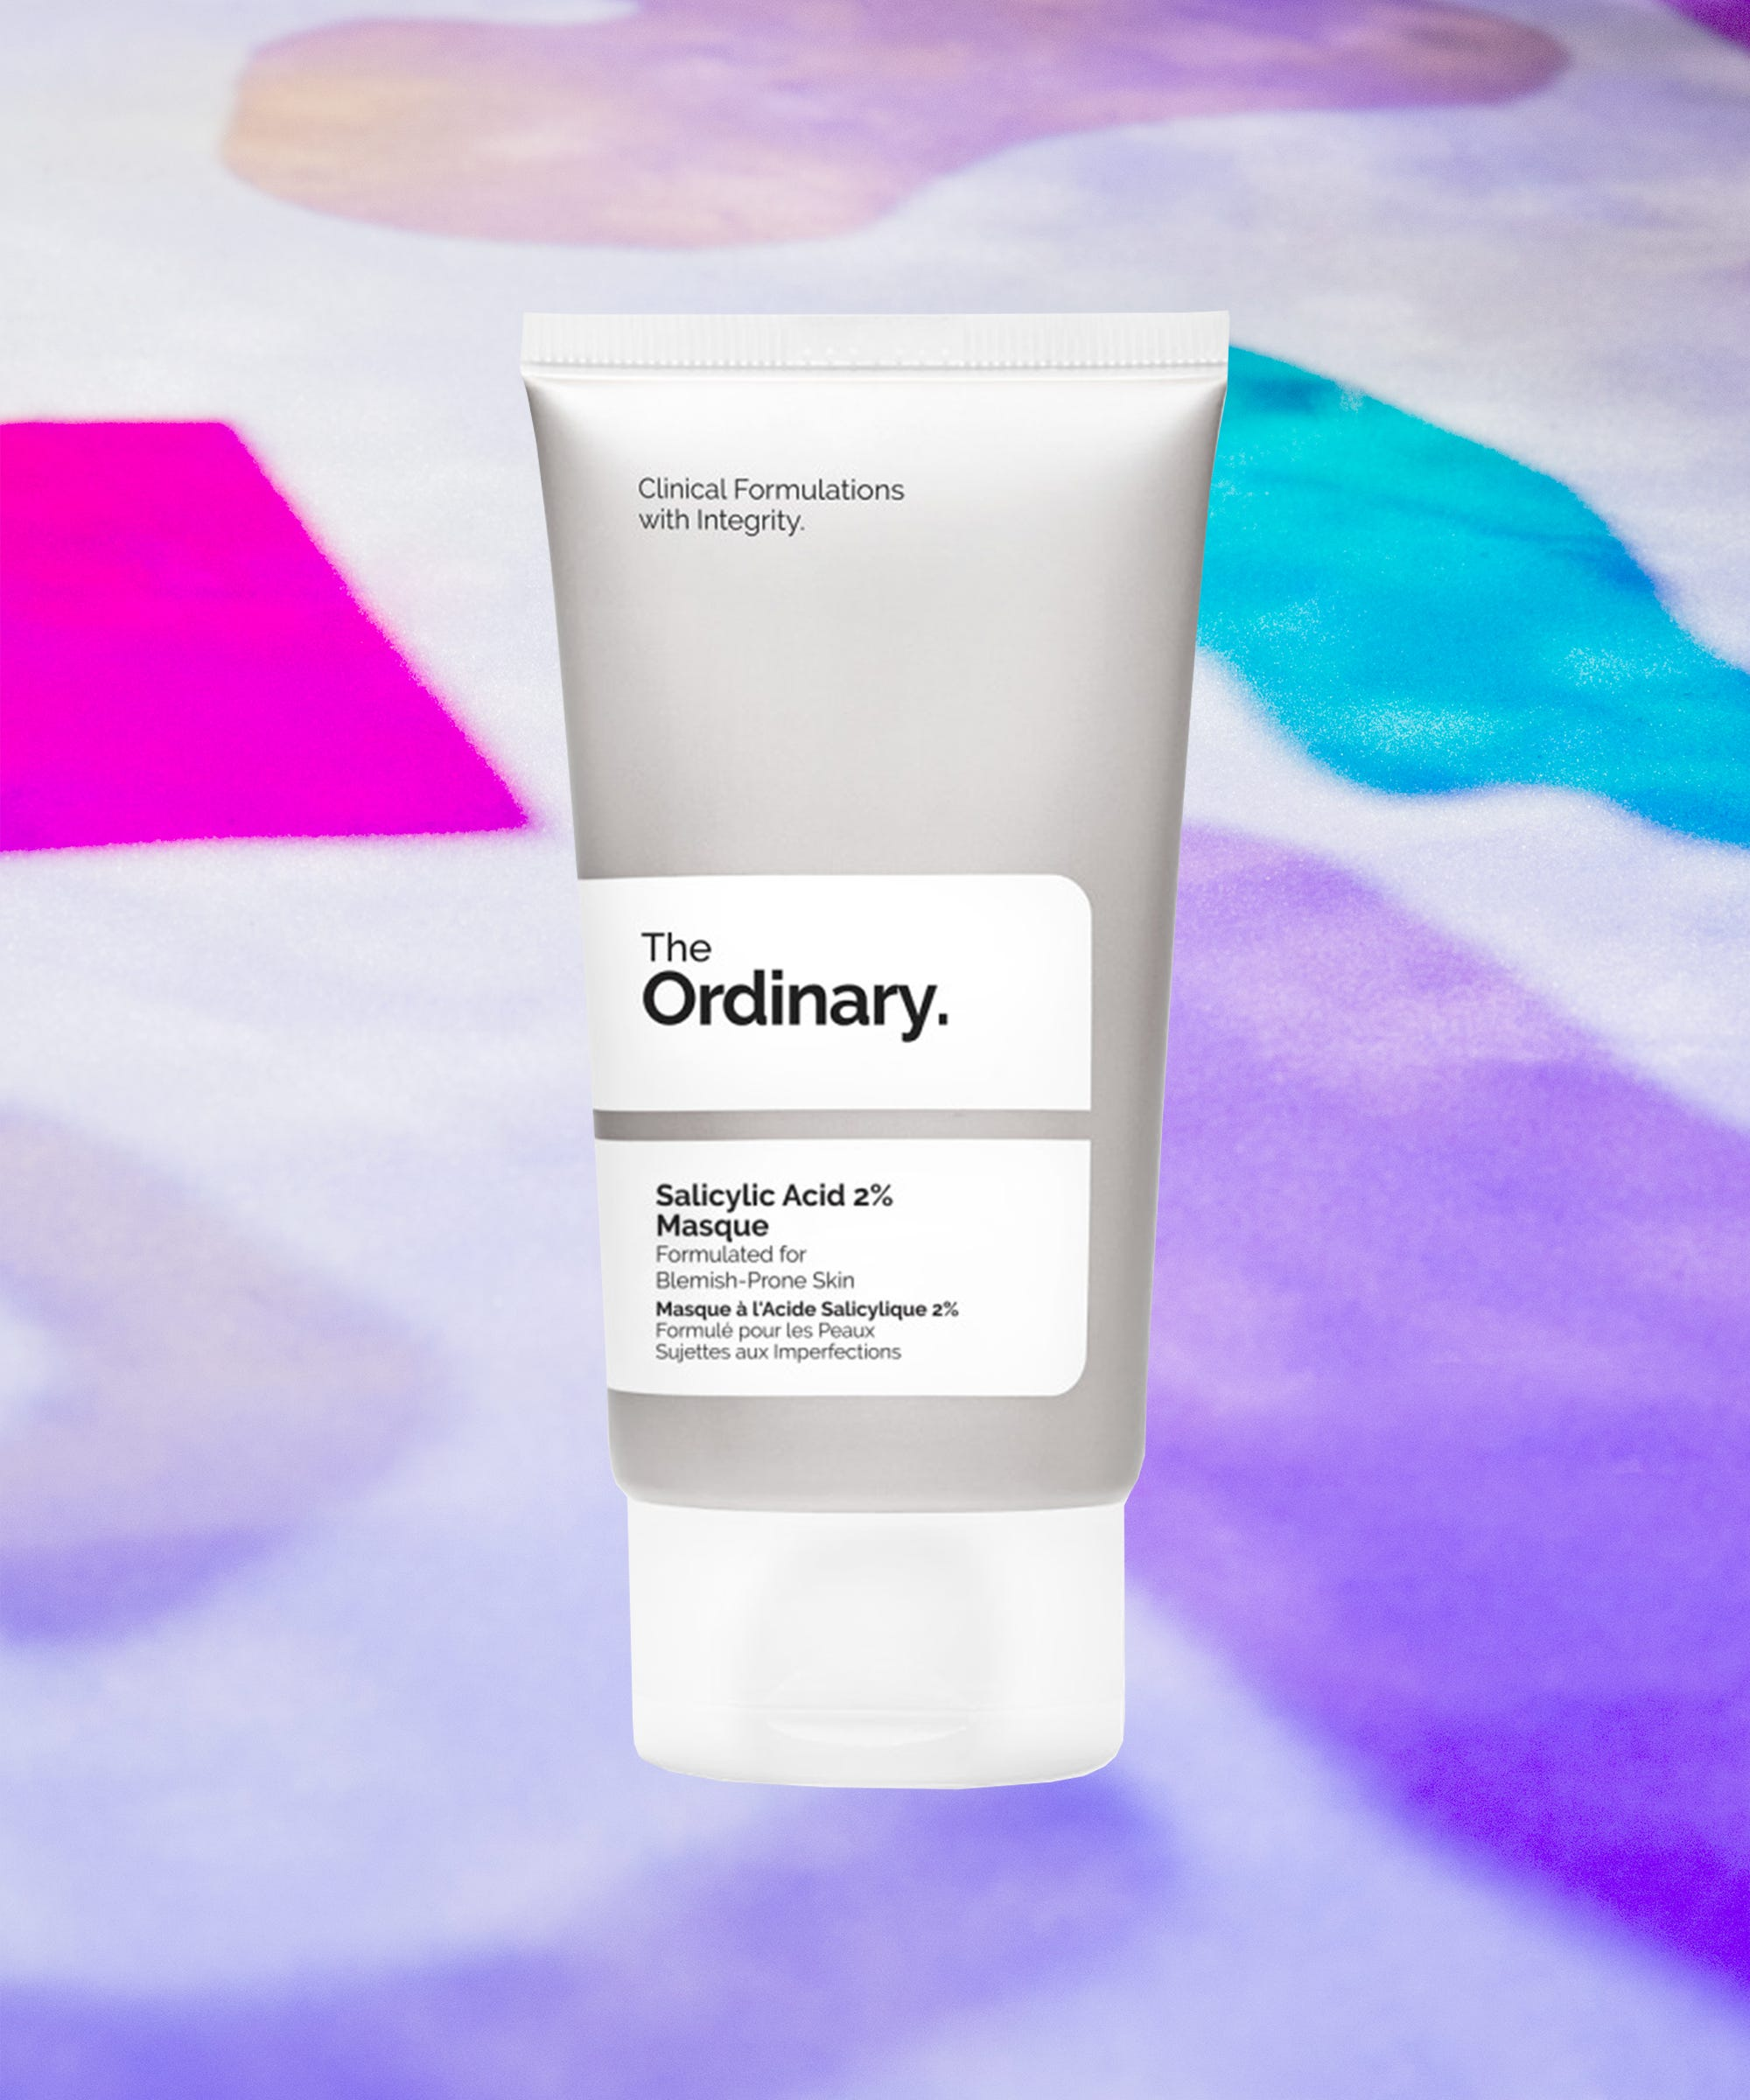 I Tried The Ordinary's $12 Face Mask — & It's Perfect For Acne-Prone Skin